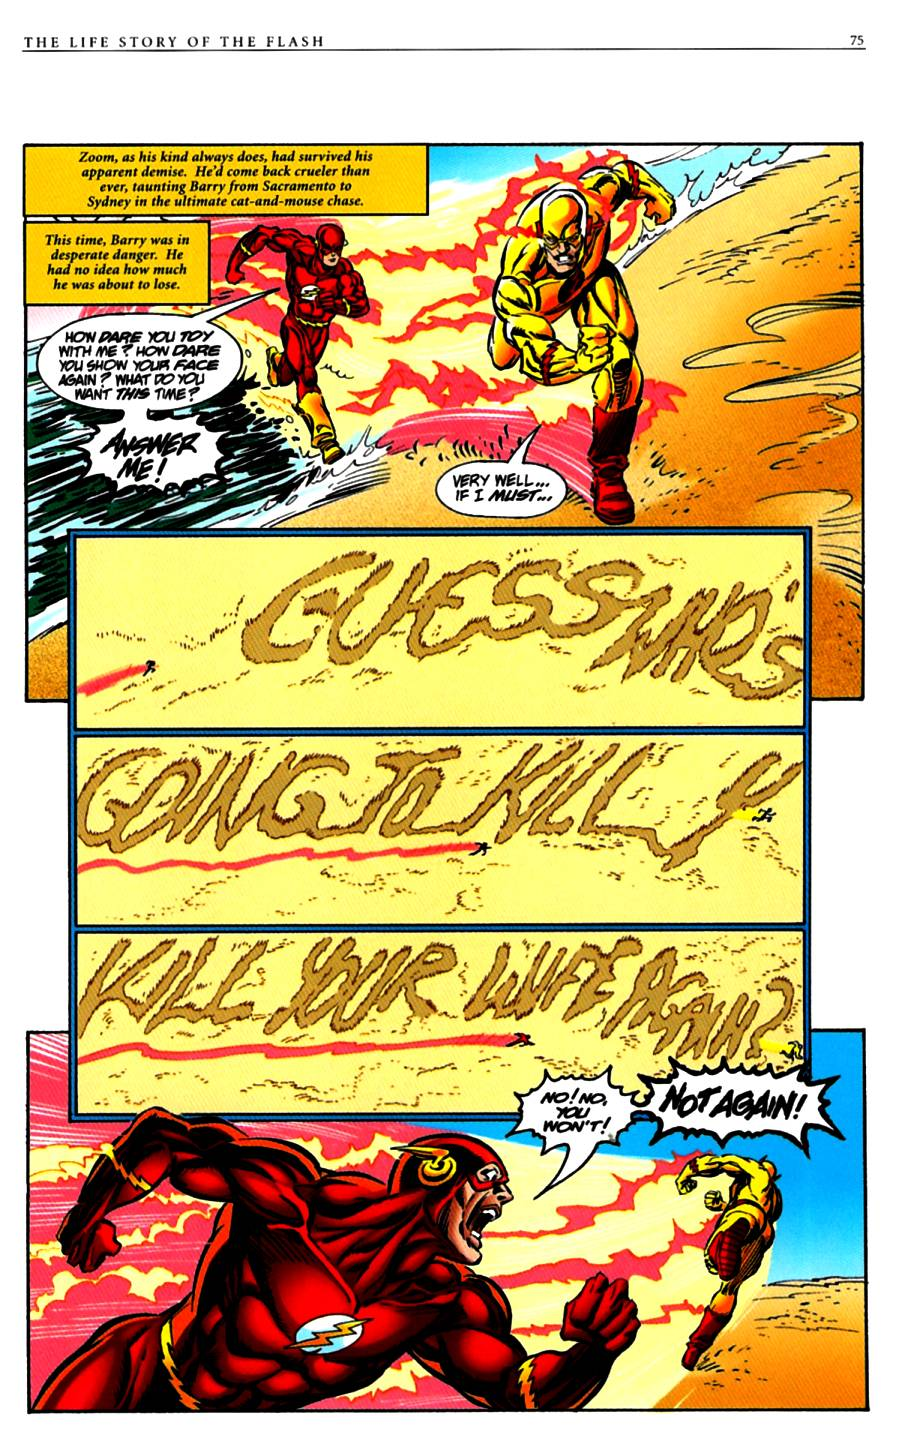 Read online The Life Story of the Flash comic -  Issue # Full - 77